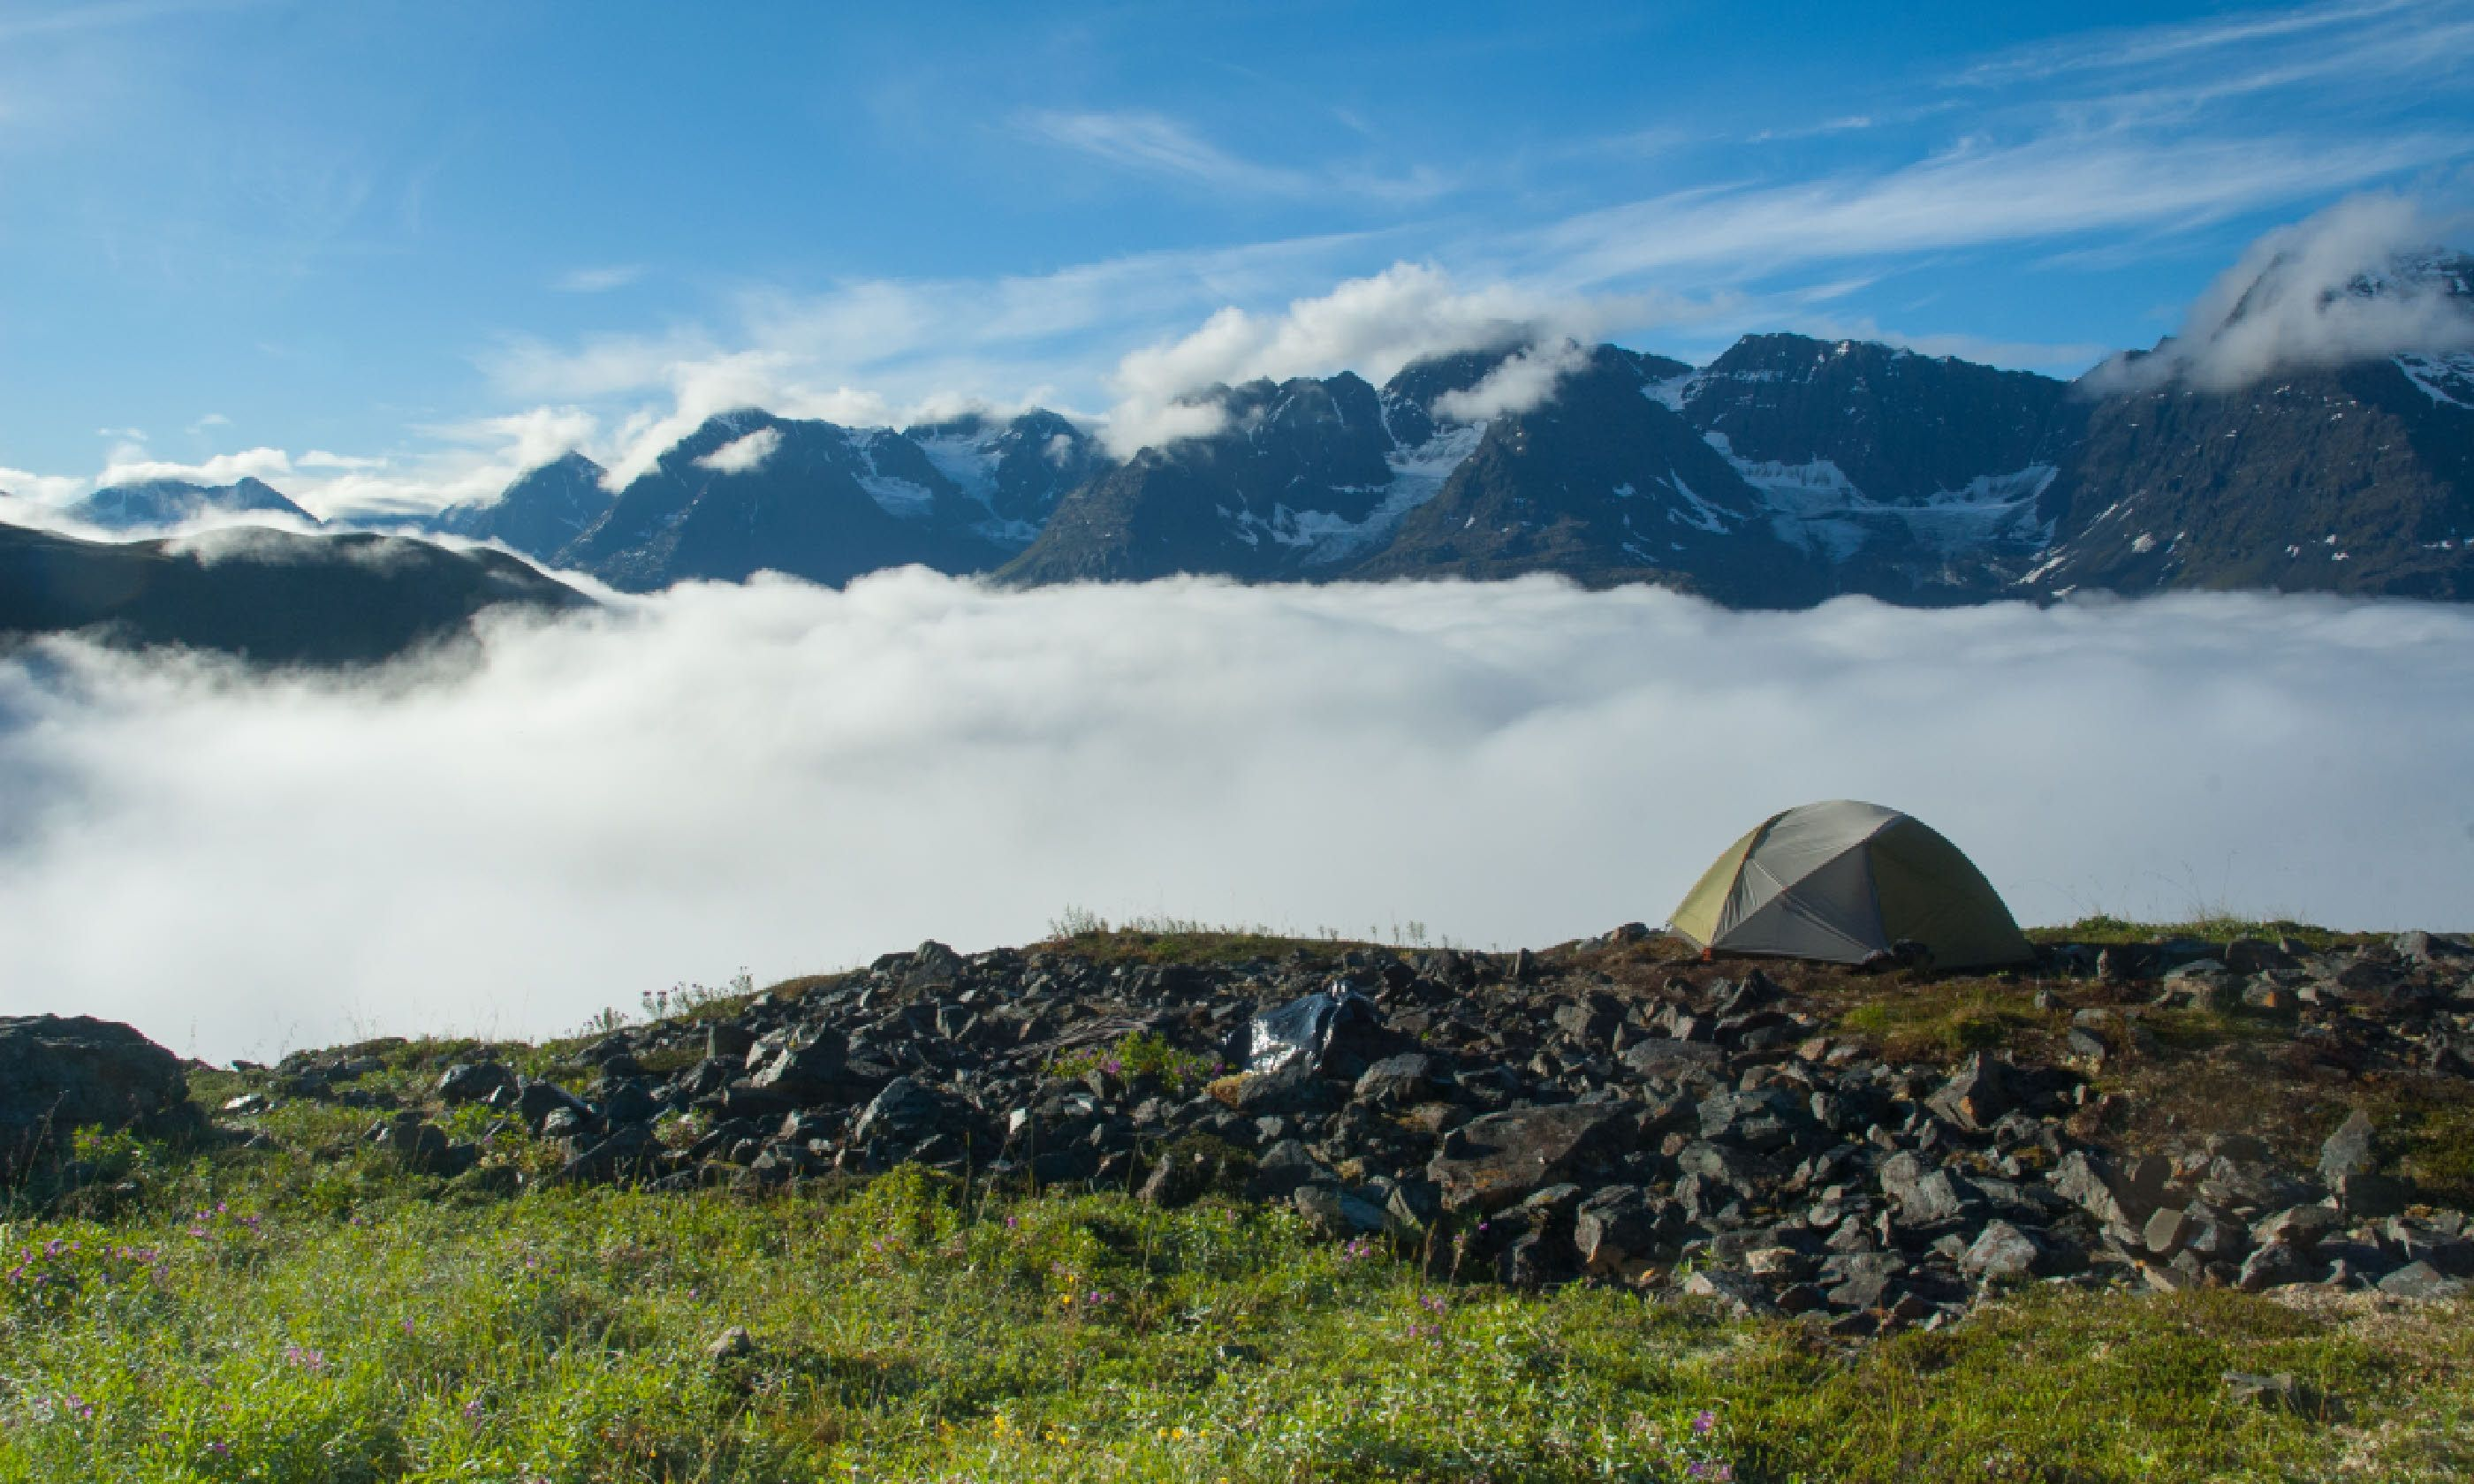 Camping in the Wrangell-St Elias National Park, Alaska (Shutterstock)